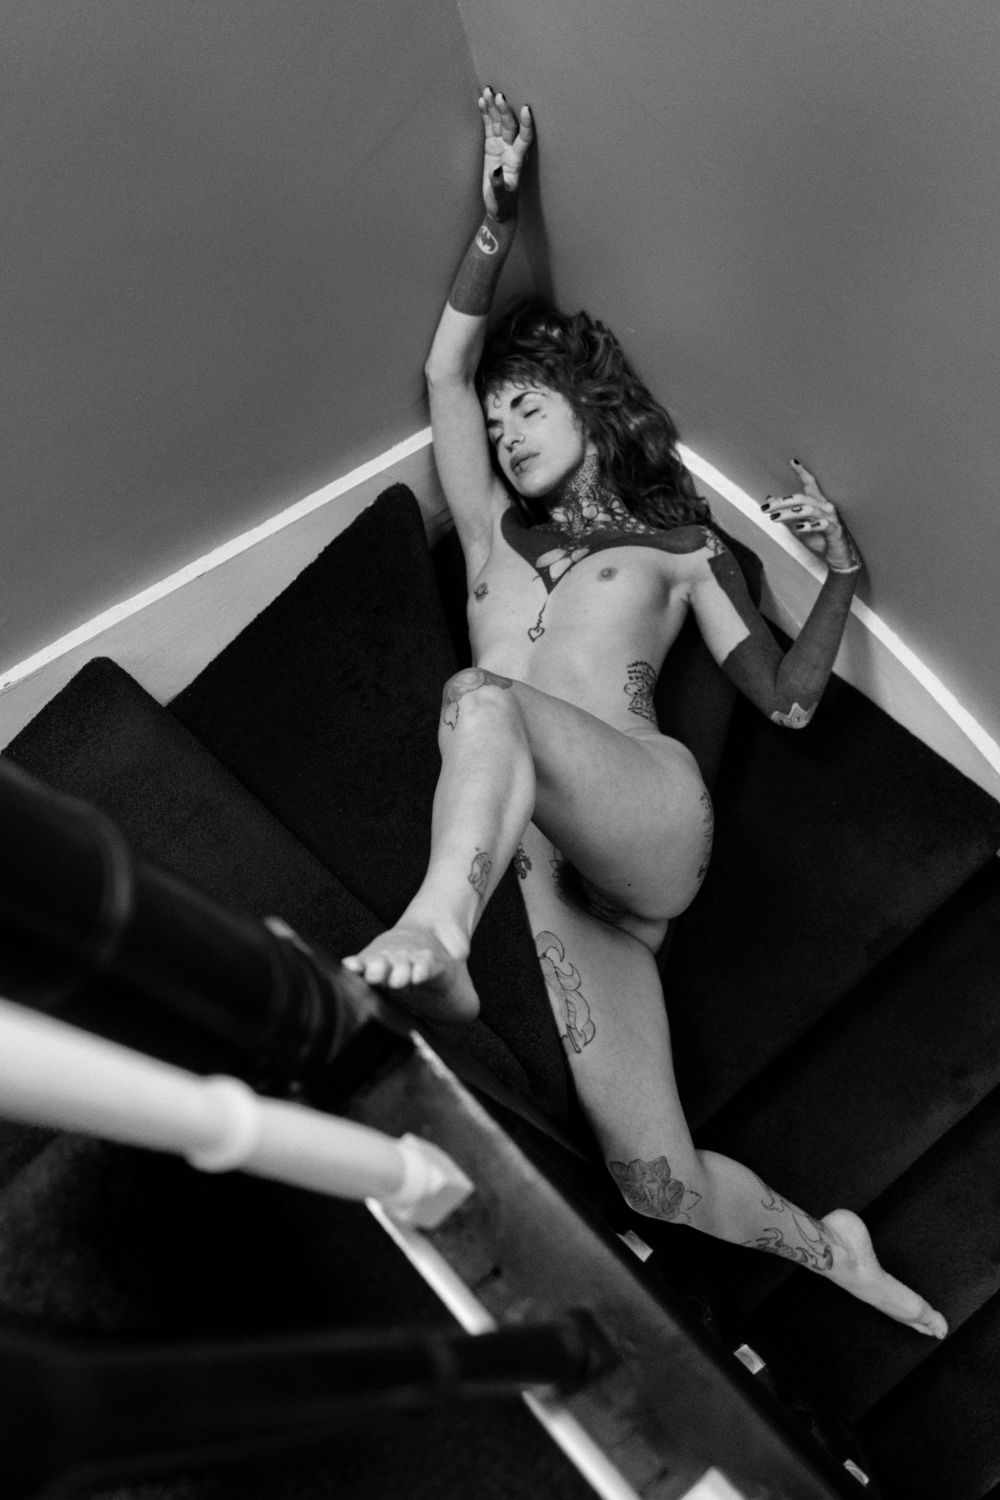 Chloe Tink nude model on stairs